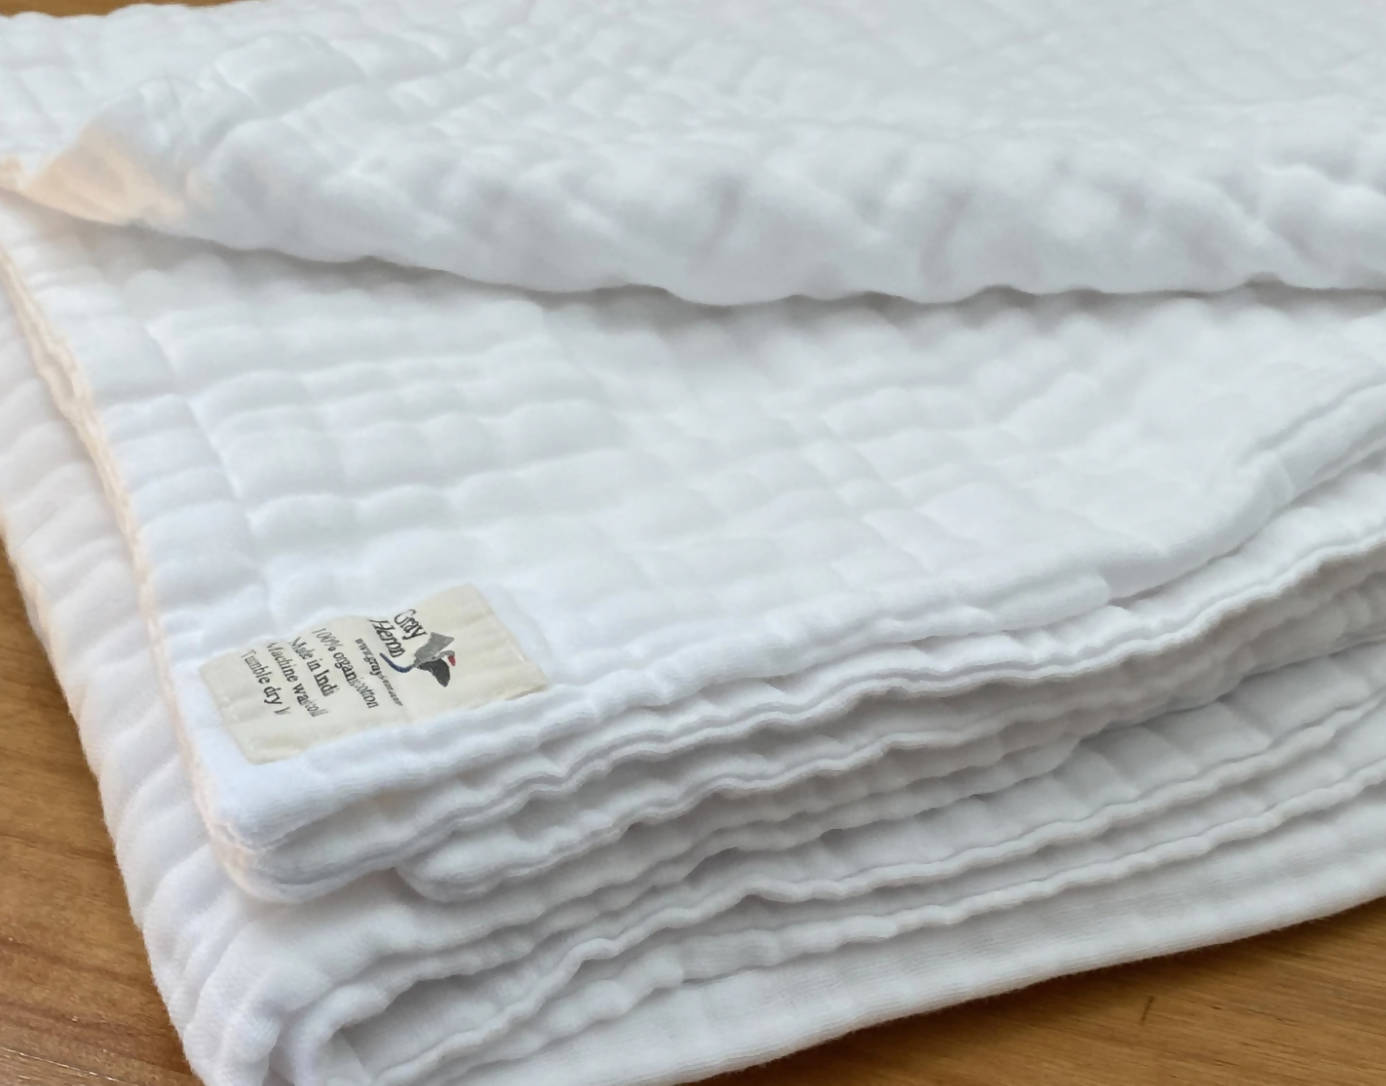 8 Layer Organic Cotton Muslin Blanket in Snow White